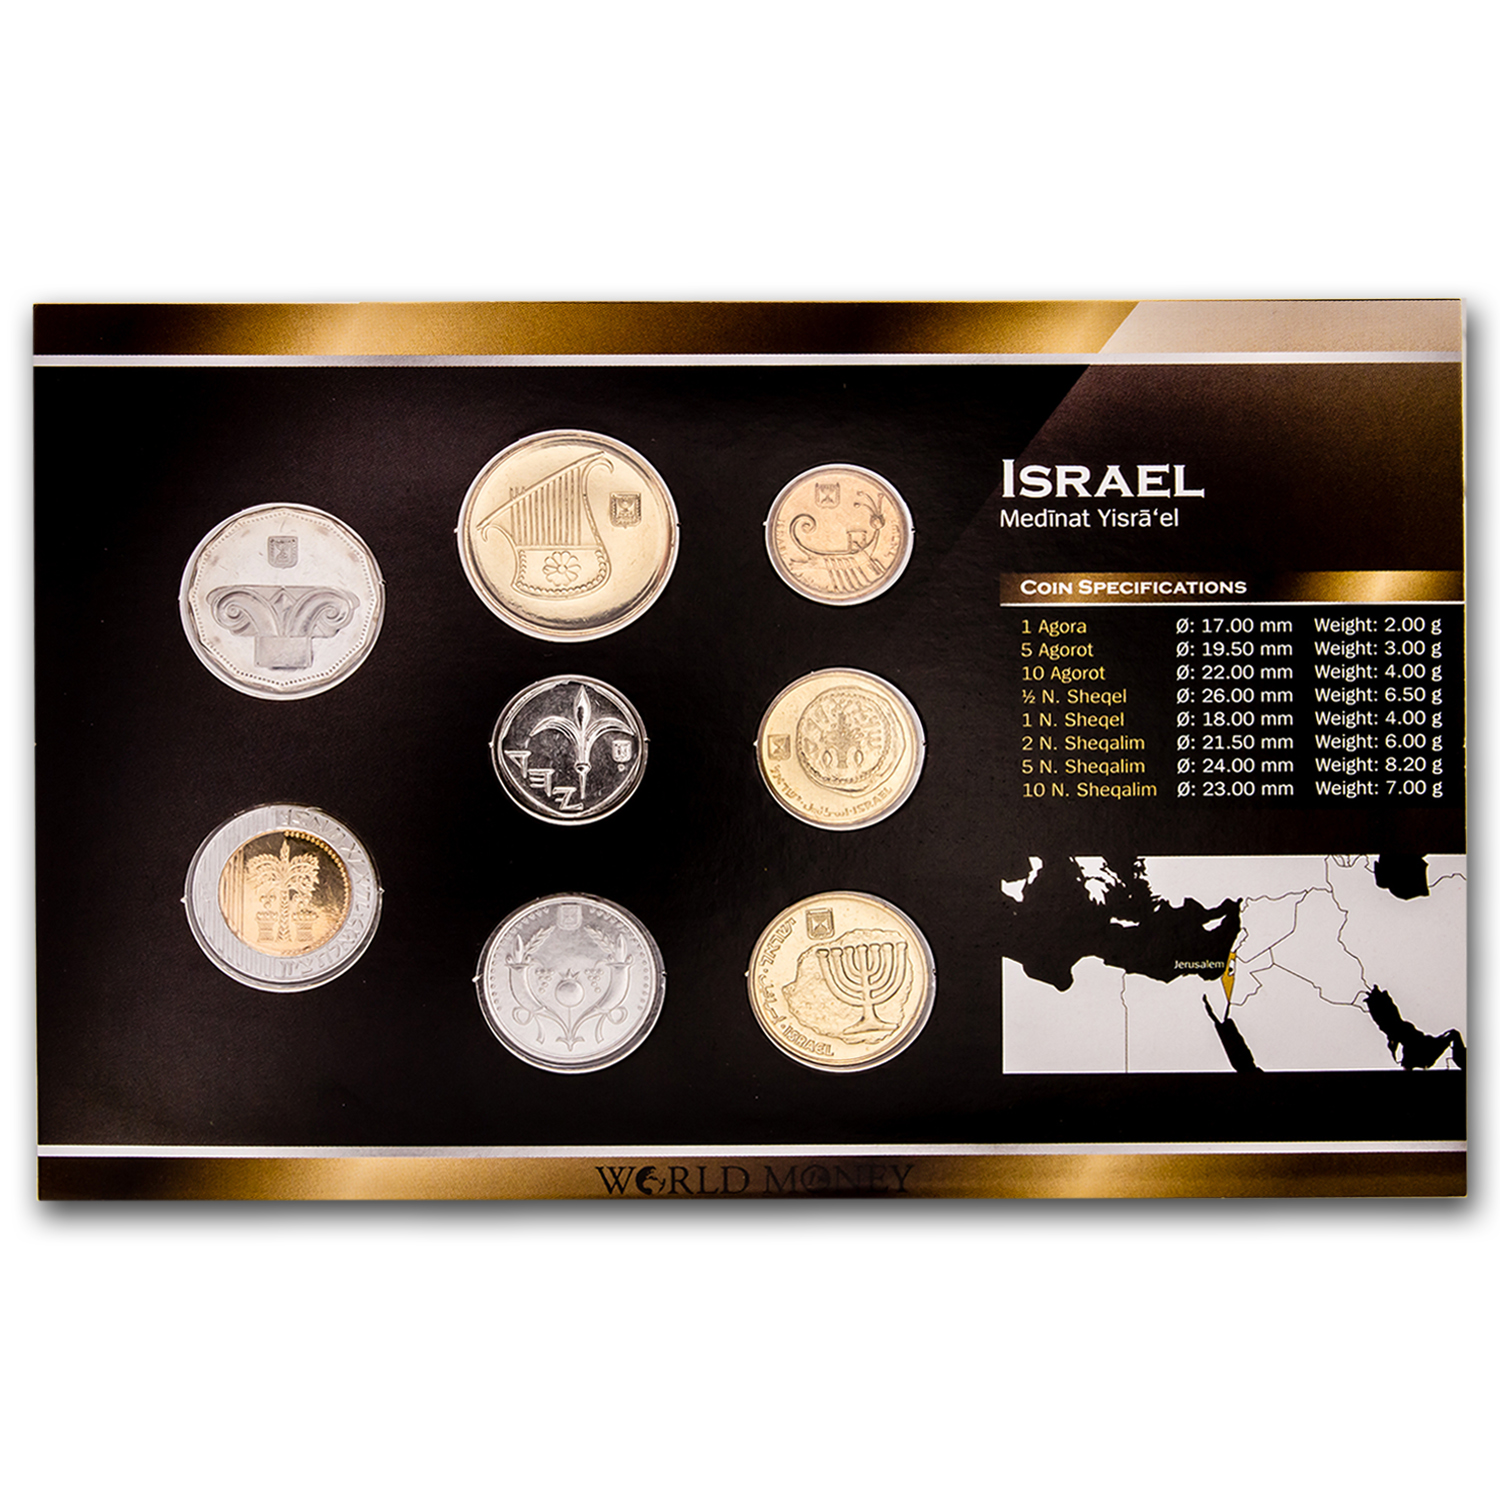 2005 Israel 1 Sheqal - 10 New Sheqalim 8-Coin Set BU